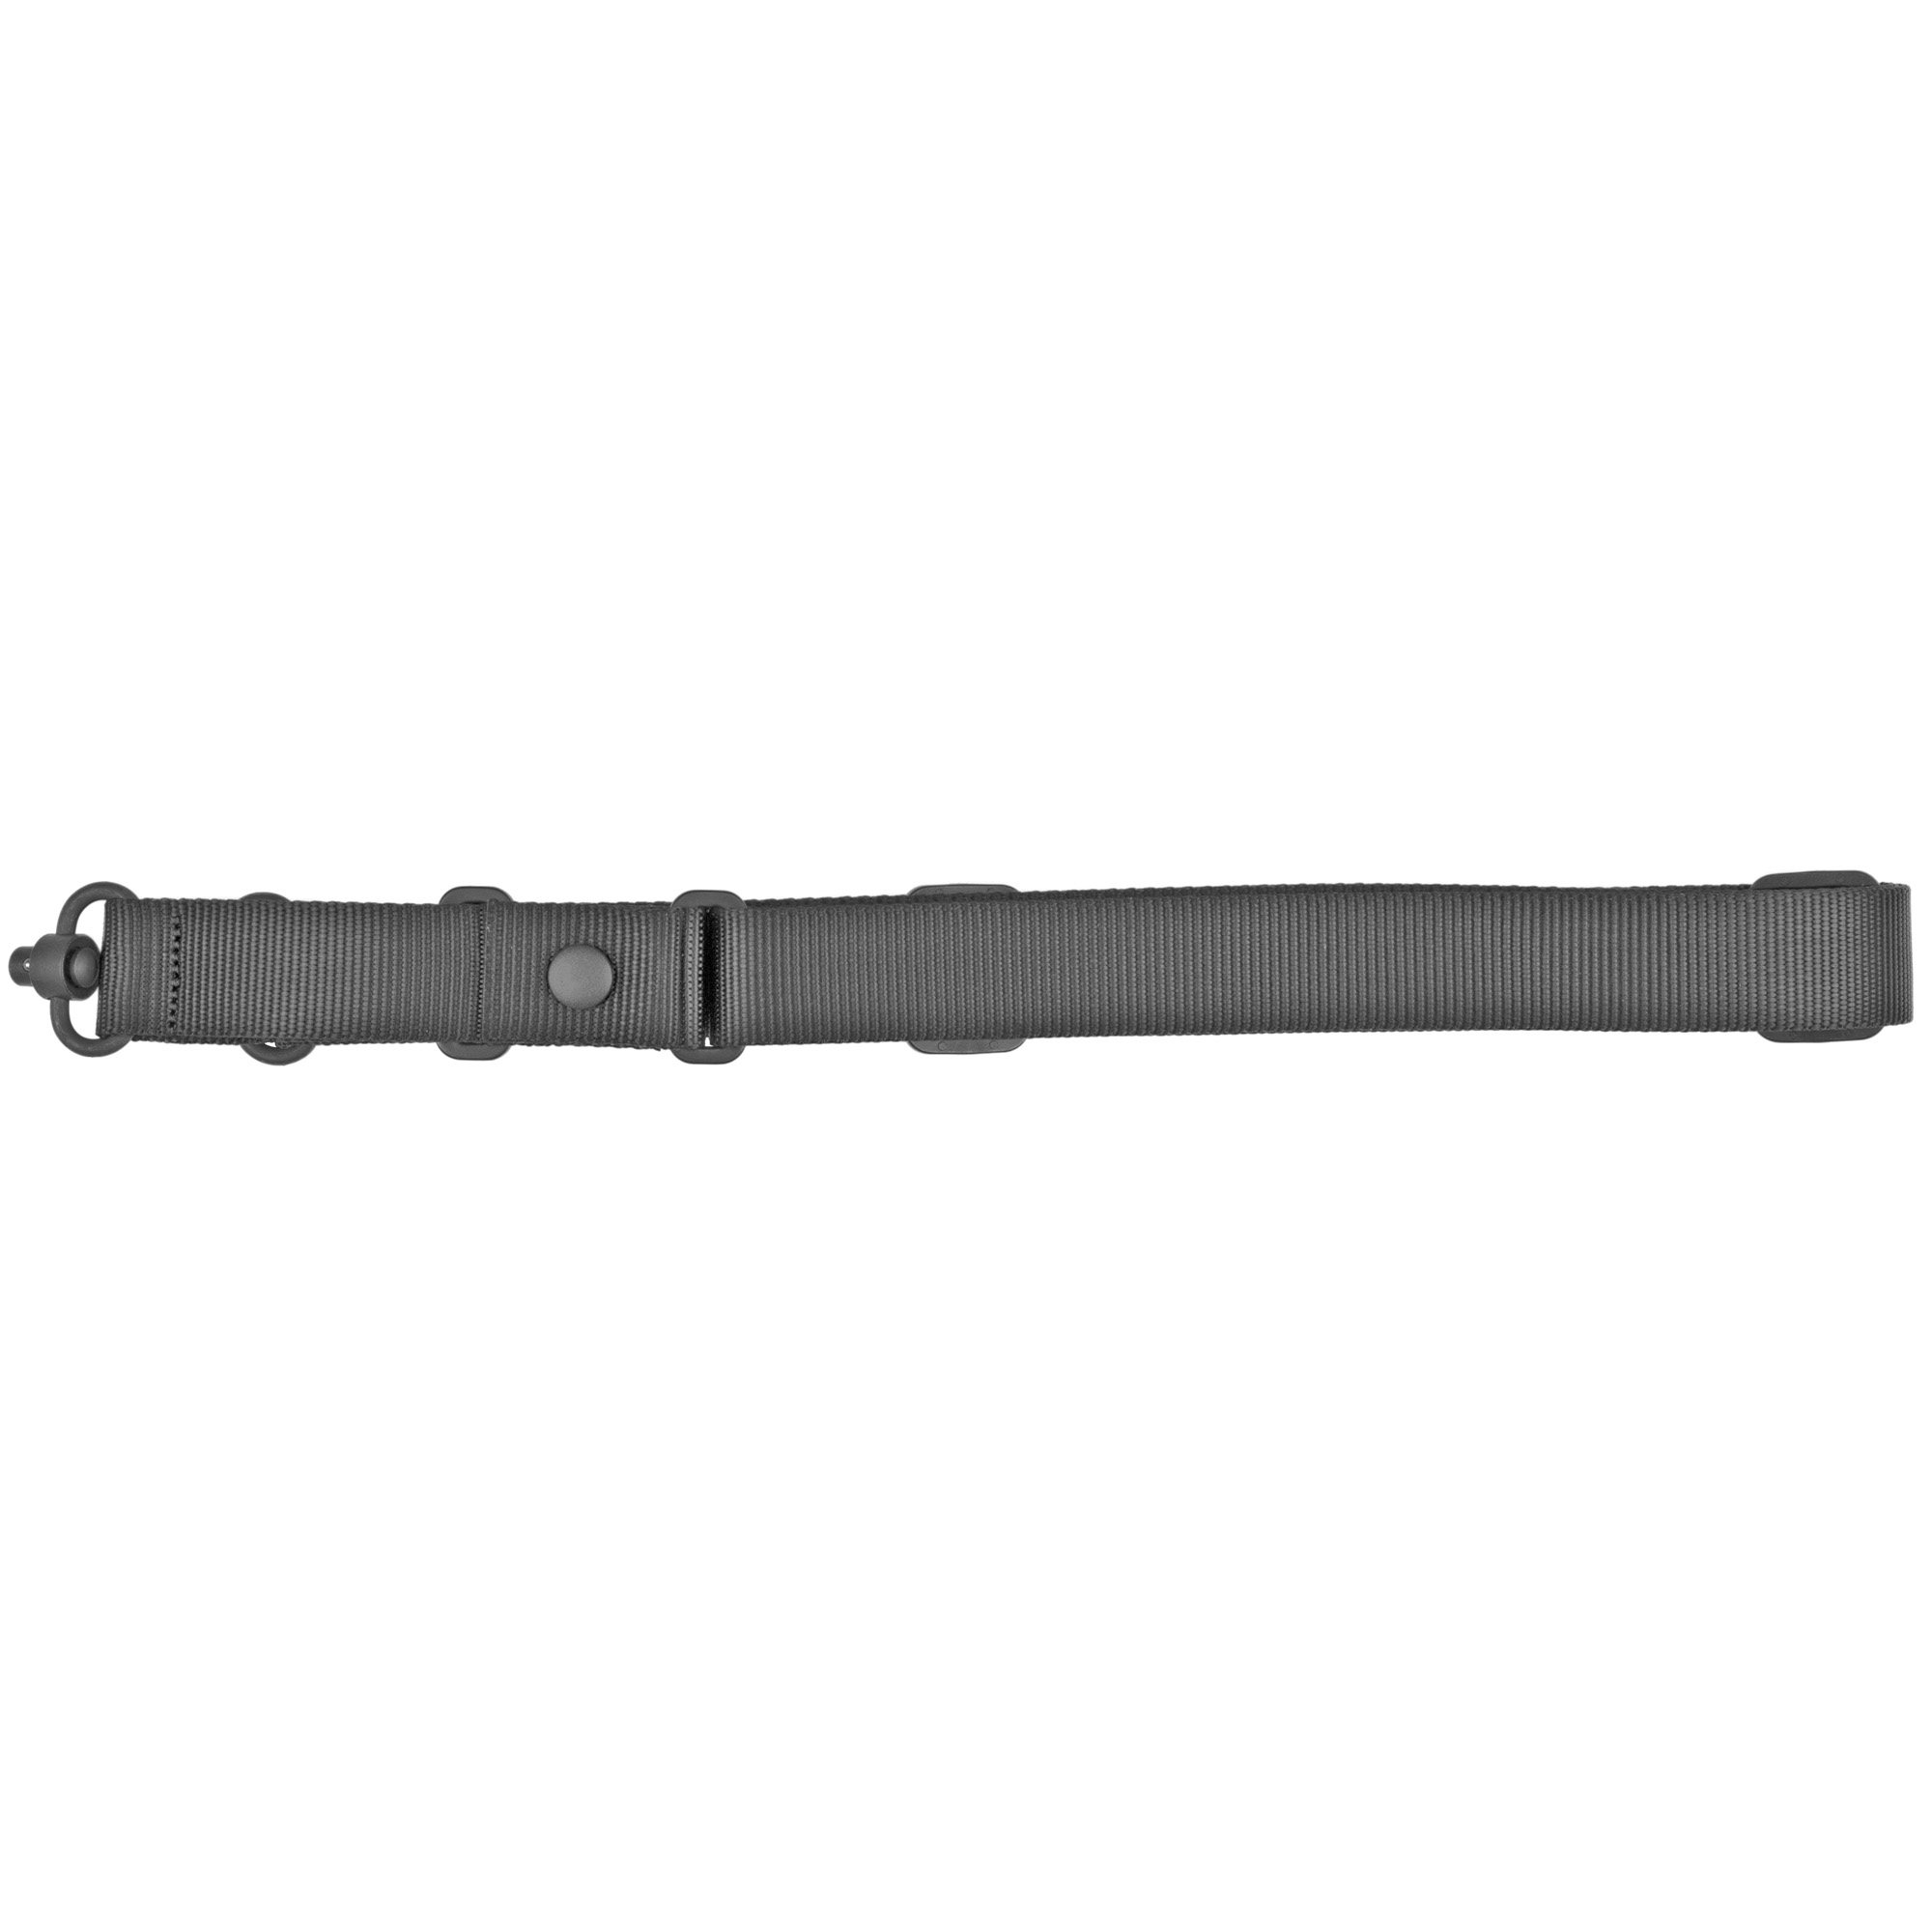 Grovtec 3 Point Tactical Sling